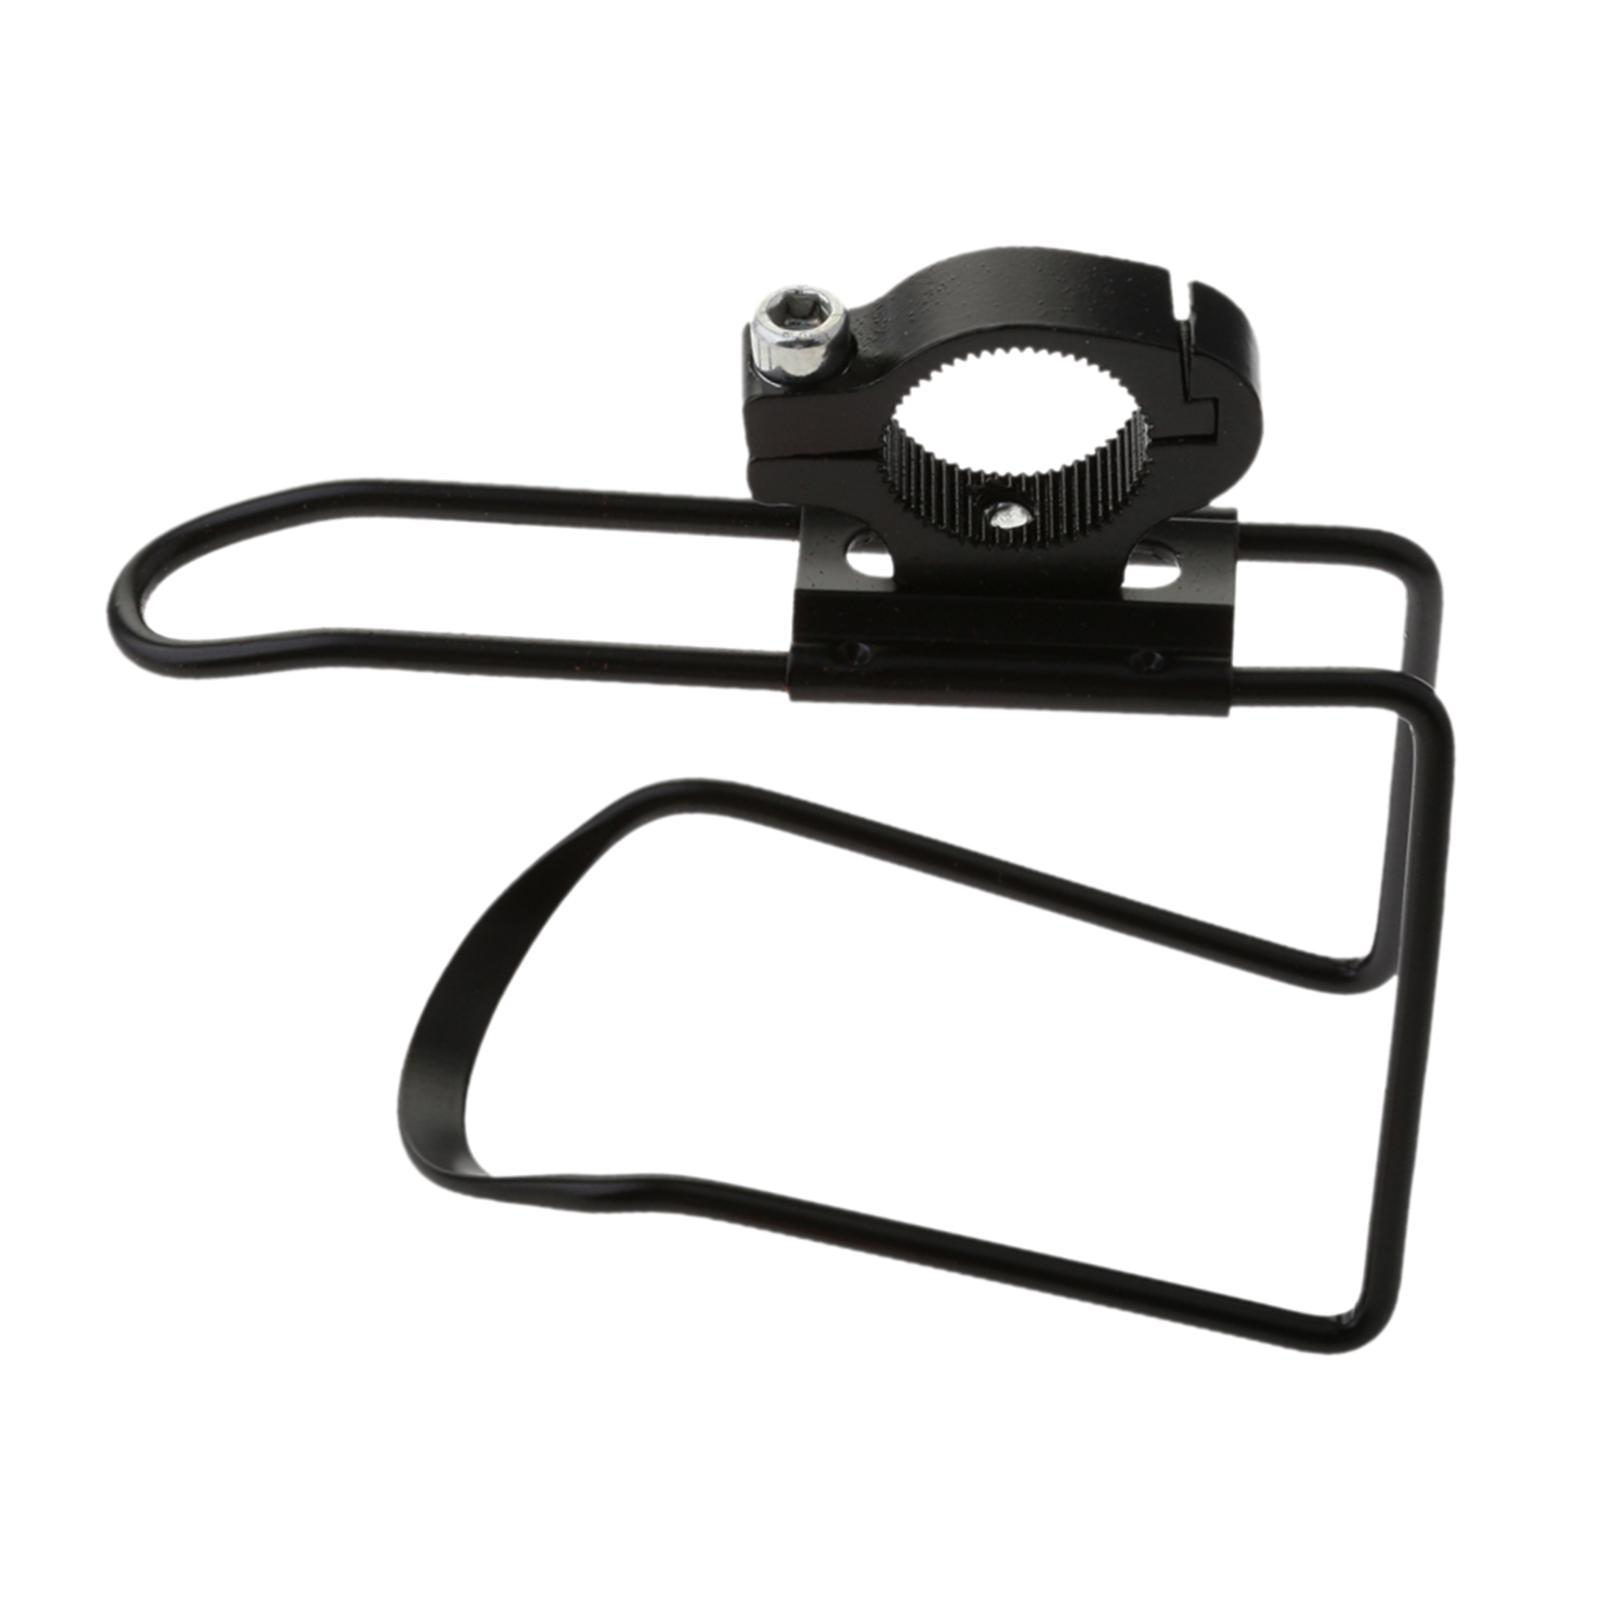 Water Bottle Cup Drink Handlebar Holder Stand Mount Cage For Bicycle Scooter CN